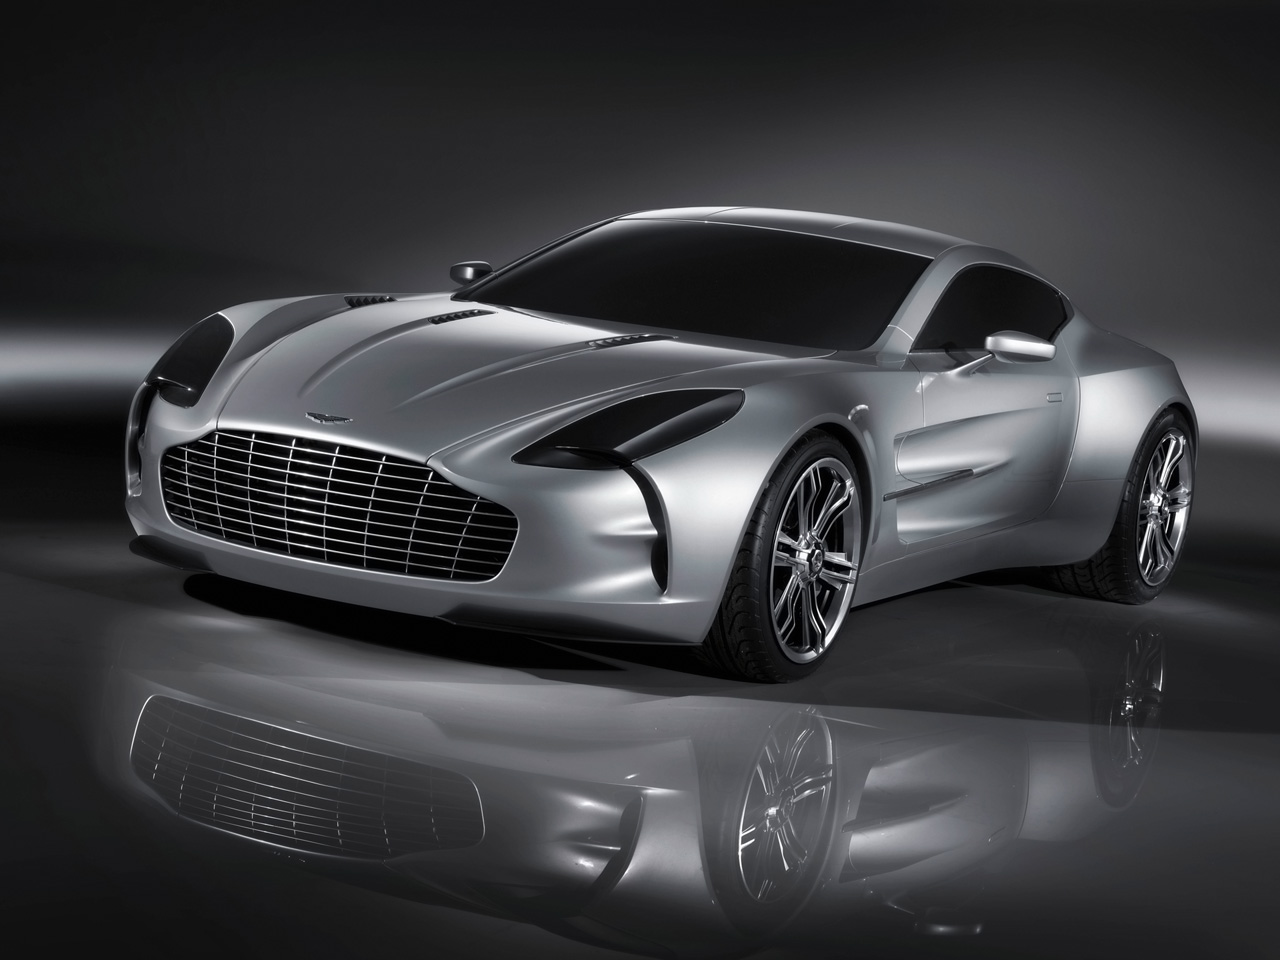 one 77 aston martin Wallpaper Free Download Image